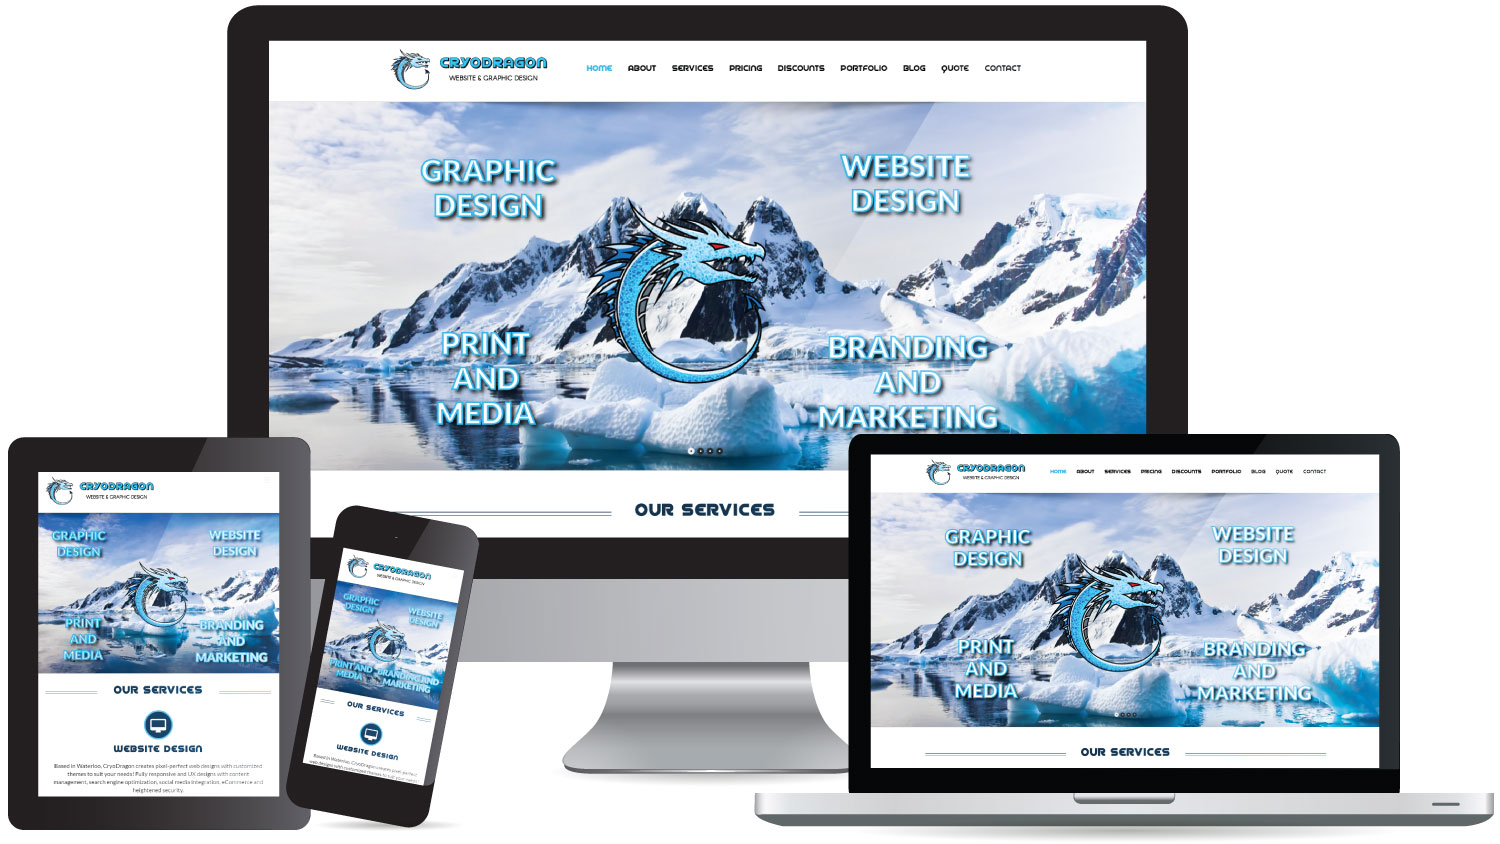 Welcome to Our New CryoDragon Website! | News, Web Design ...